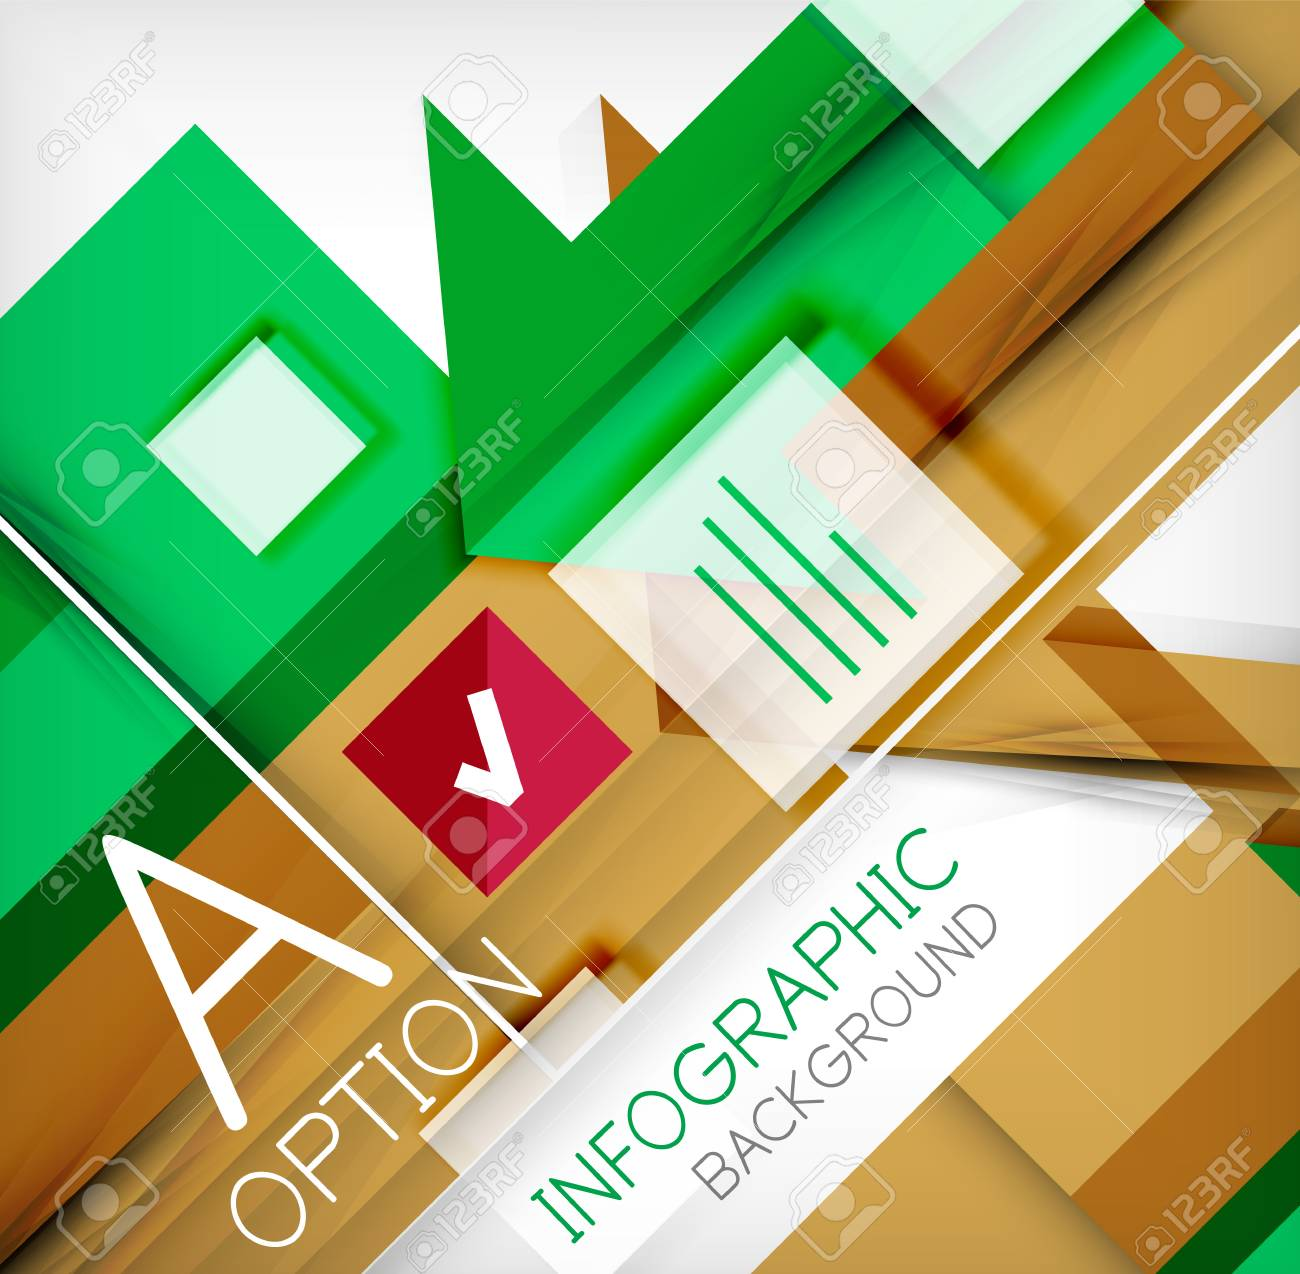 Infographic abstract background - arrow geometric shape. For business presentation | technology | web design Stock Vector - 26210047